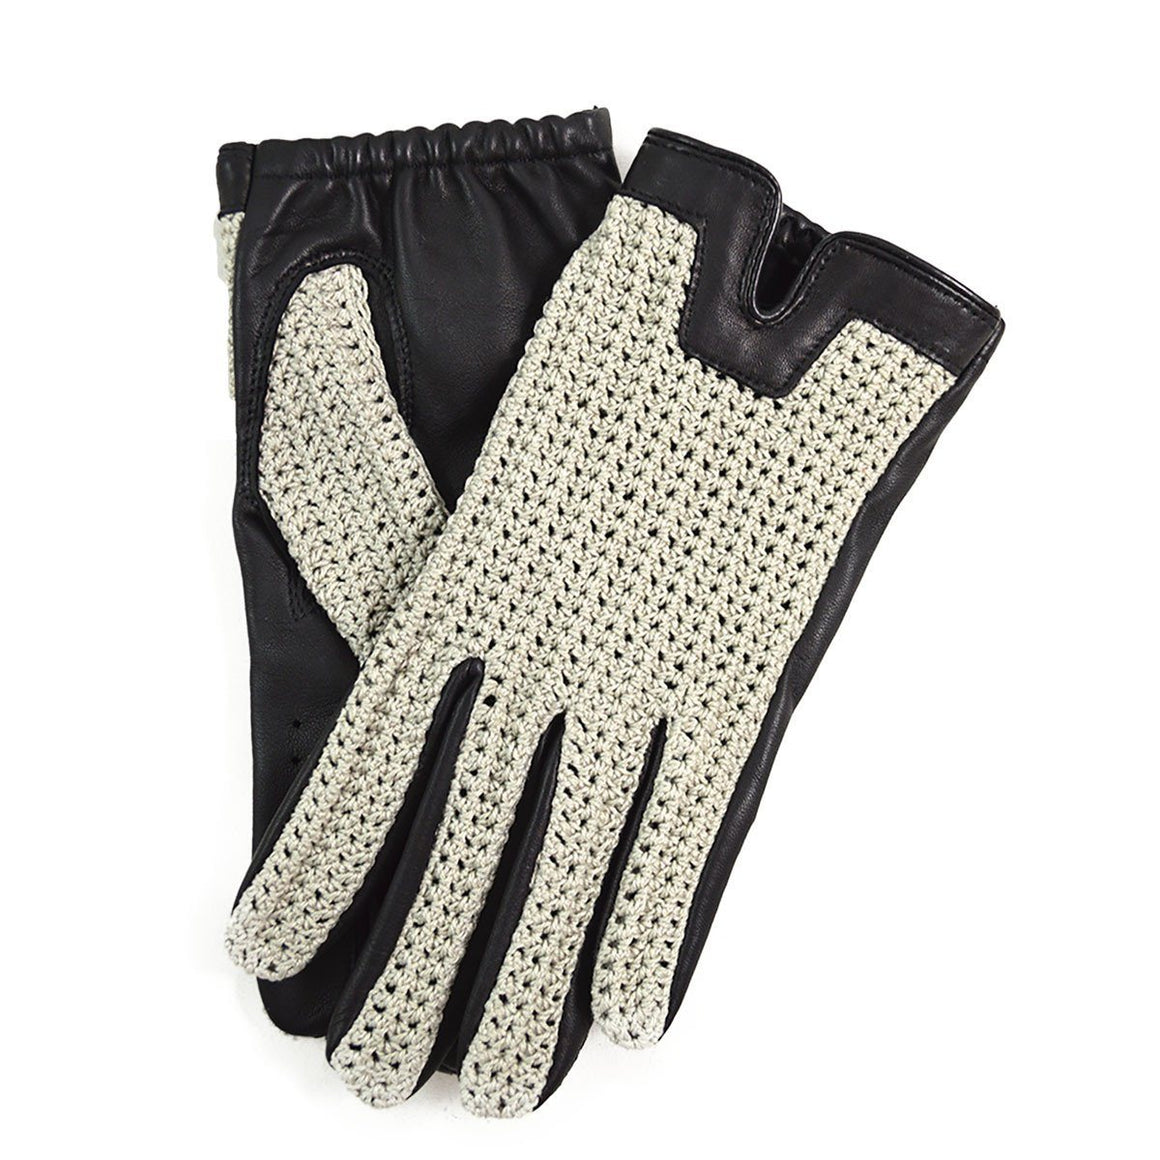 DENTS DONNINGTON Crochet and Leather Driving Gloves - Black